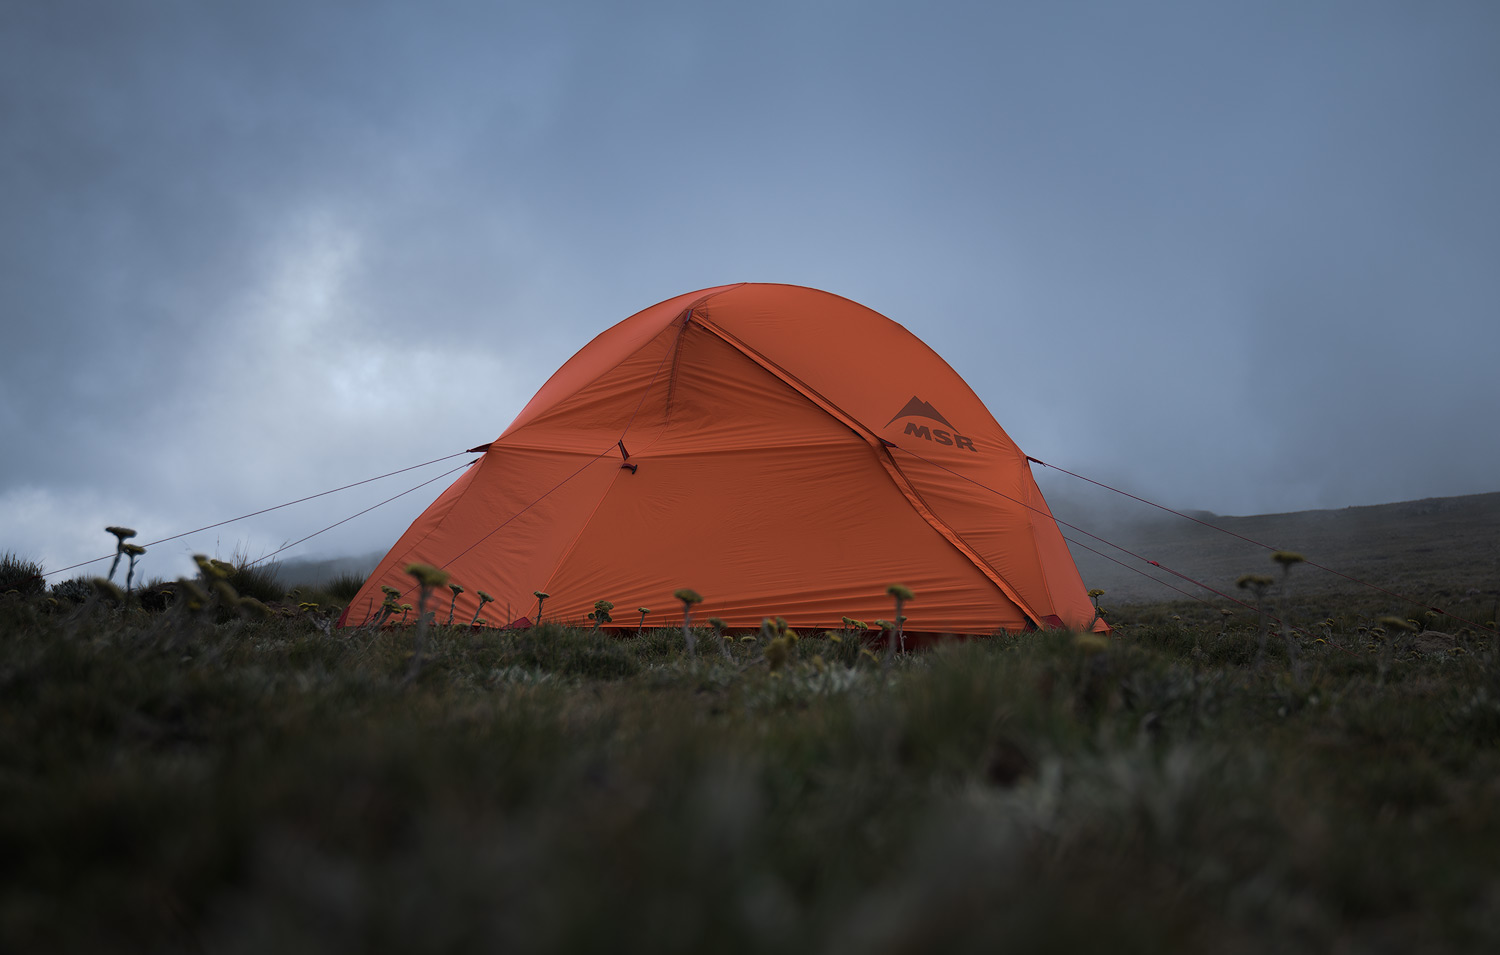 This is my MSR Access 1 tent. I absolutely love this tent. Its a lightweight (1.7kg) 1-man 4-season tent, quite small but I like to stay organised in the tent so the space is plentiful for me. It stands up well in heavy wind.